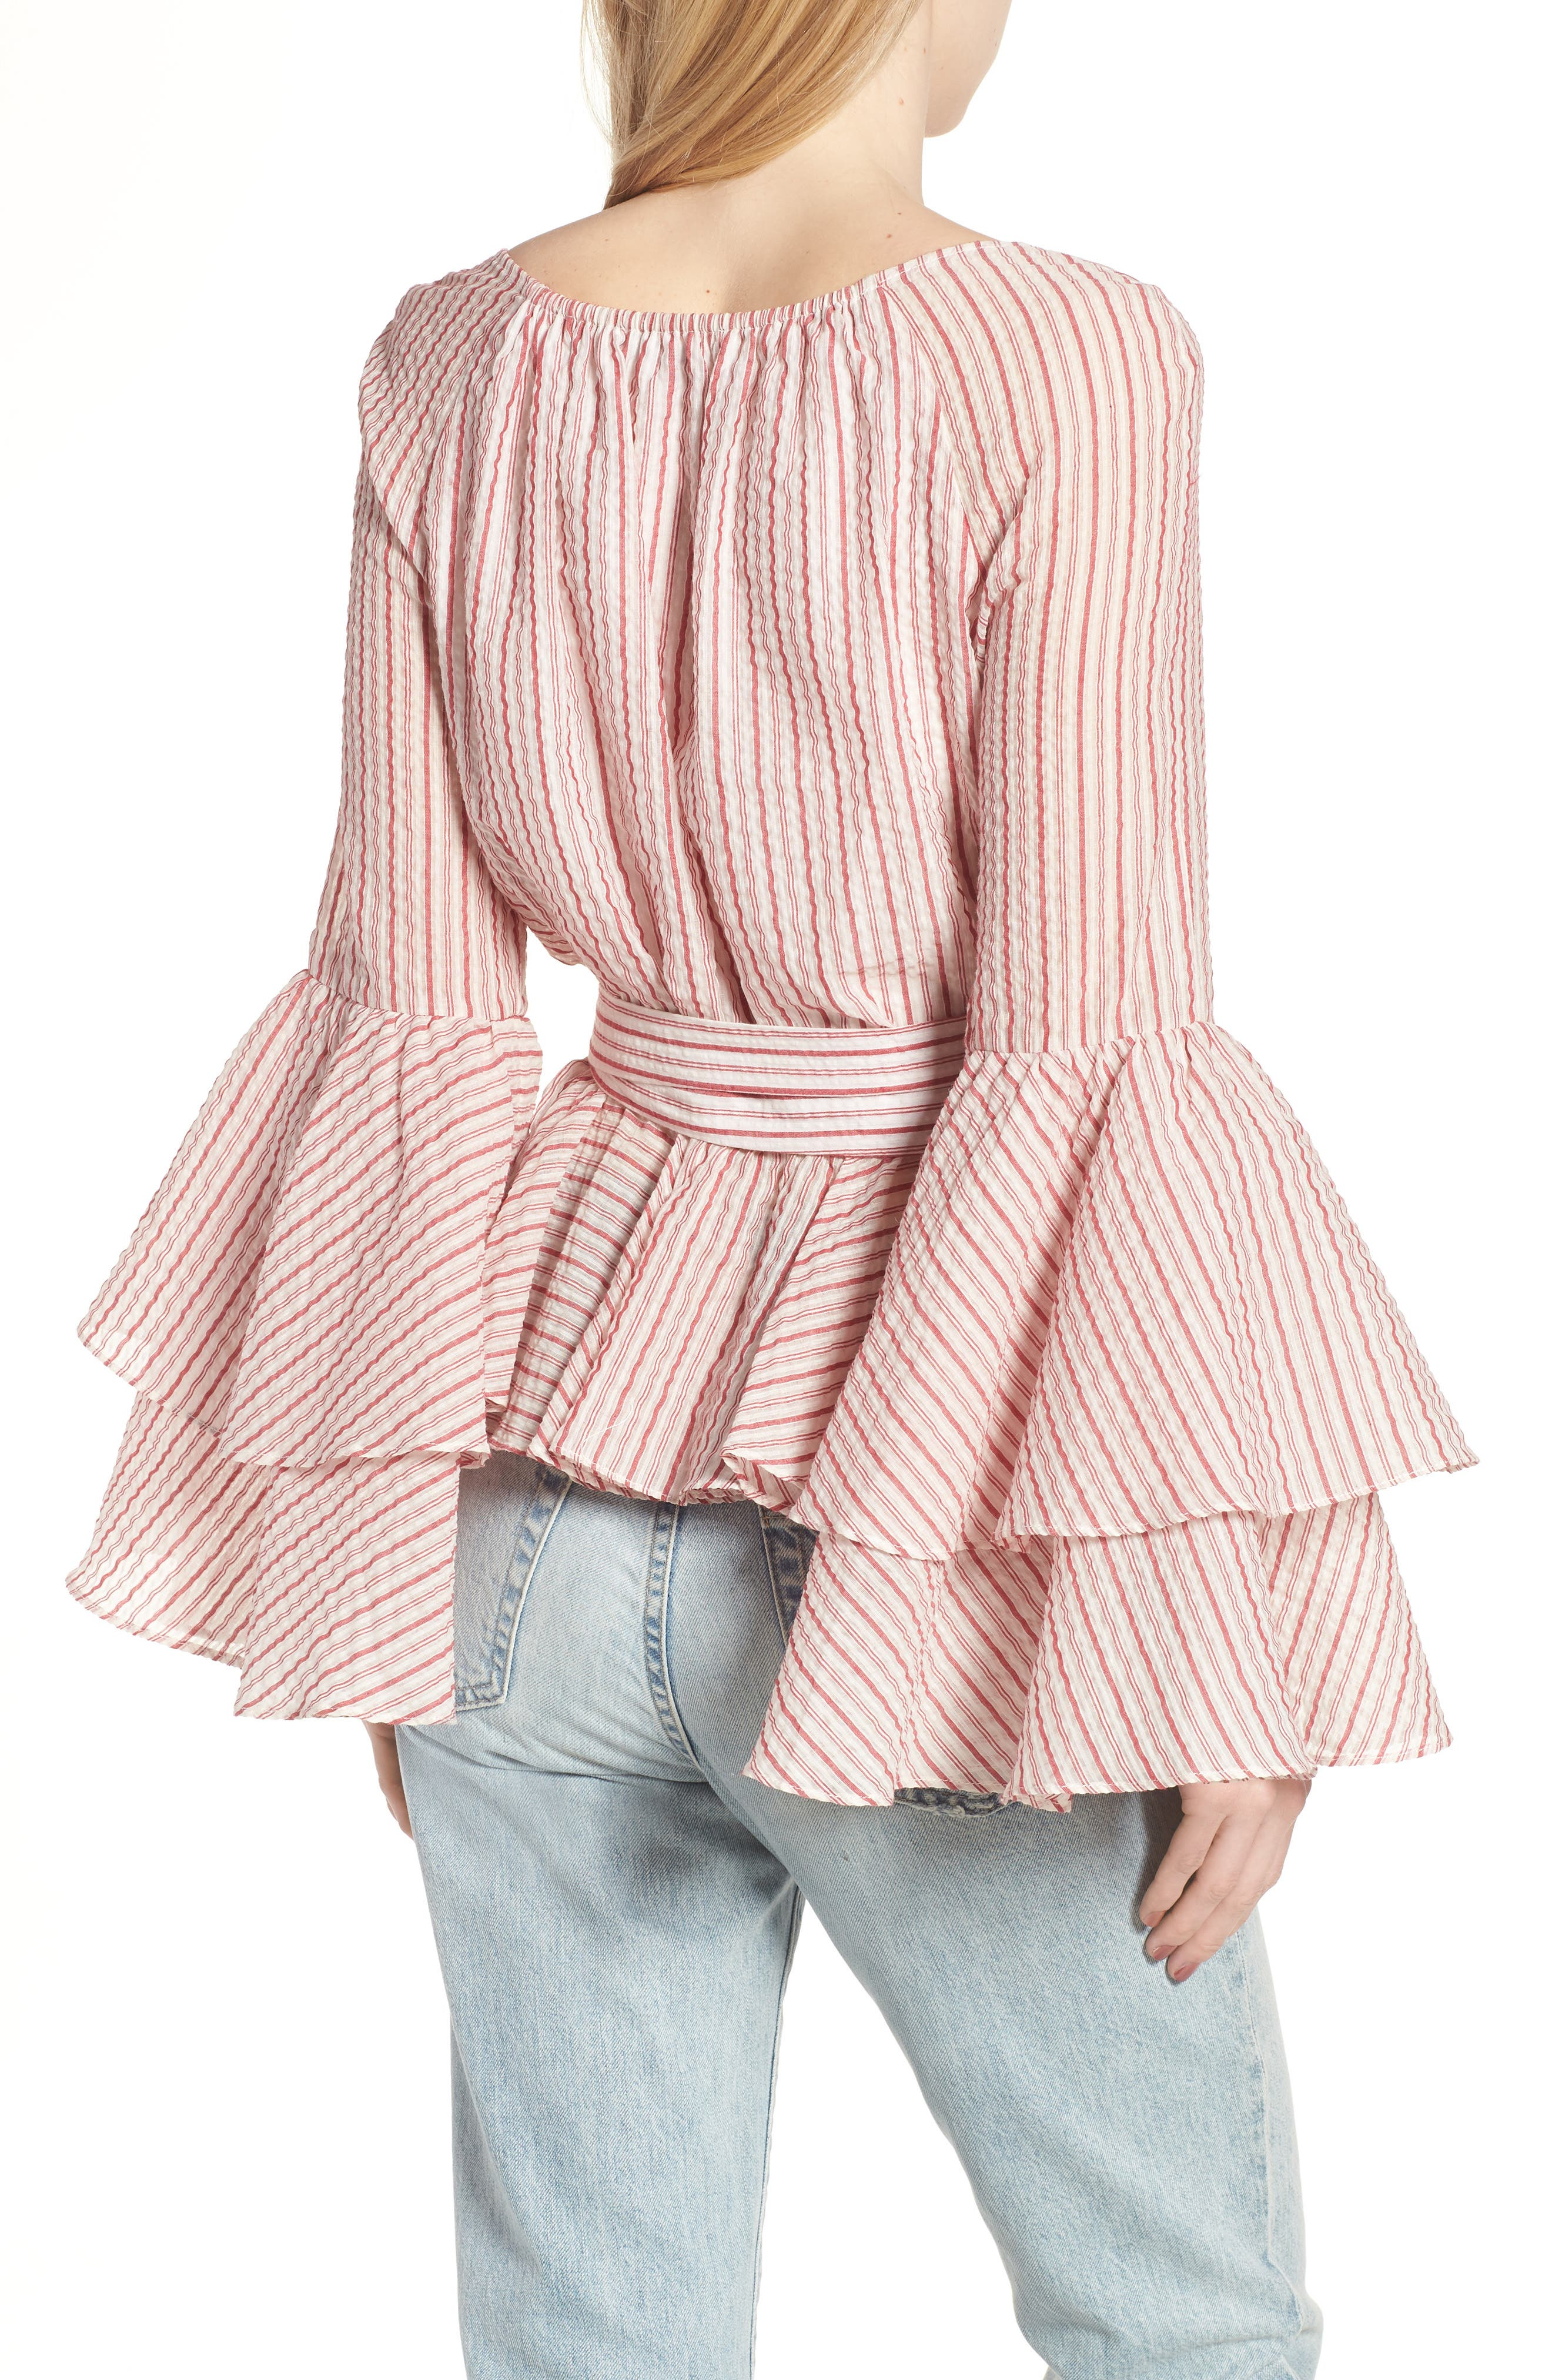 Melly Stripe Top,                             Alternate thumbnail 3, color,                             603